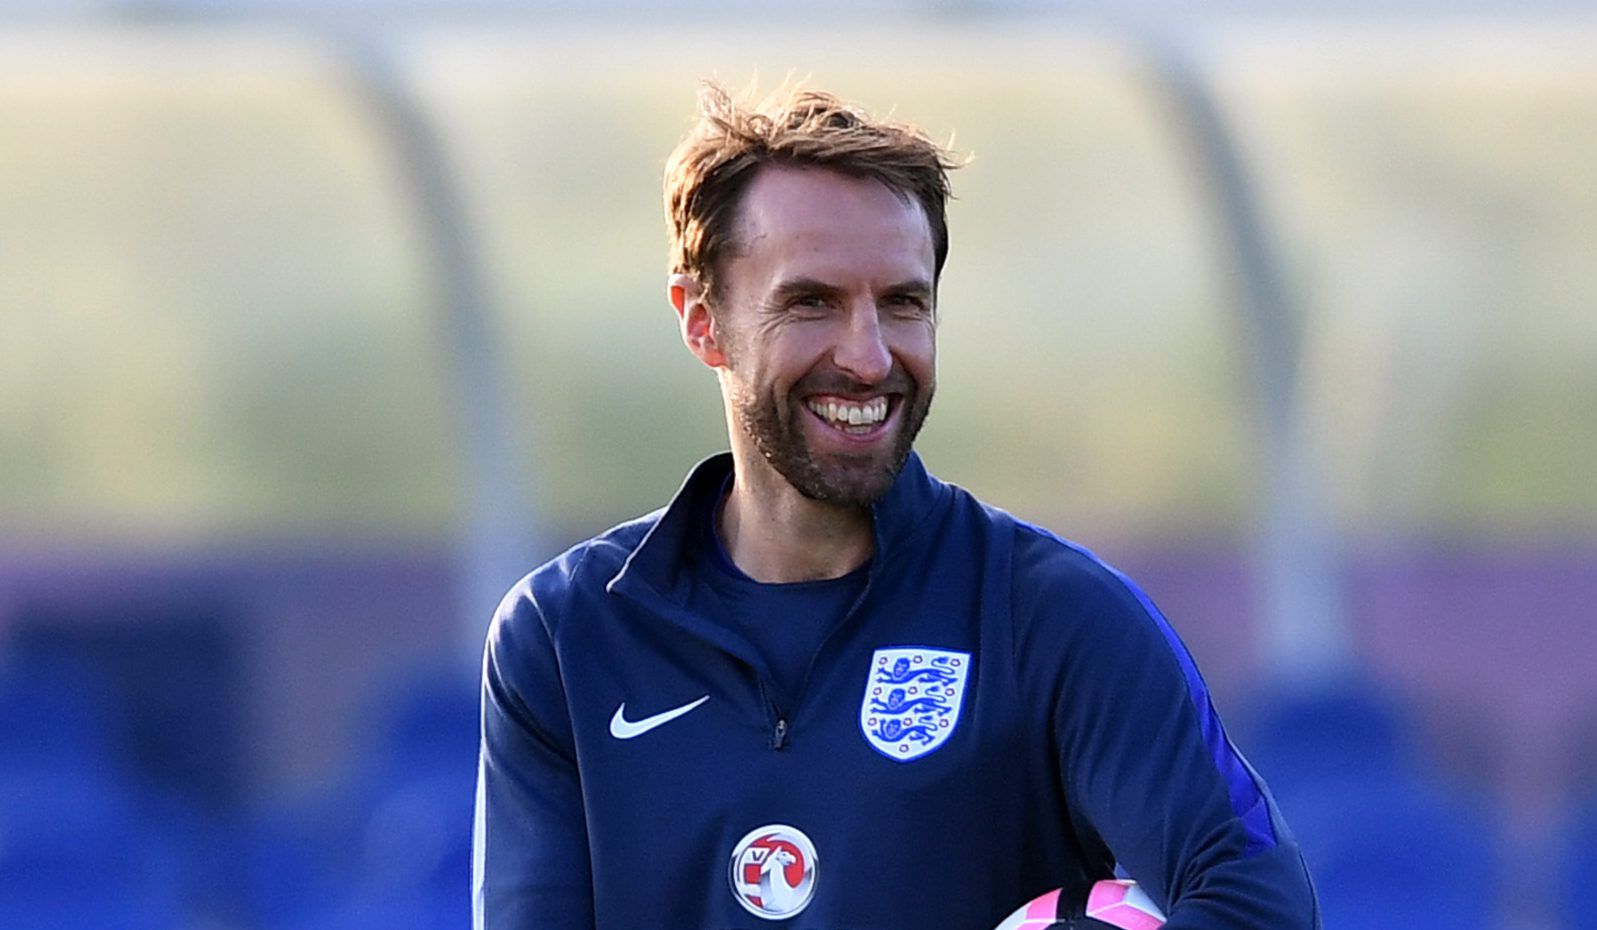 Gareth Southgate named England manager until Euro 2020